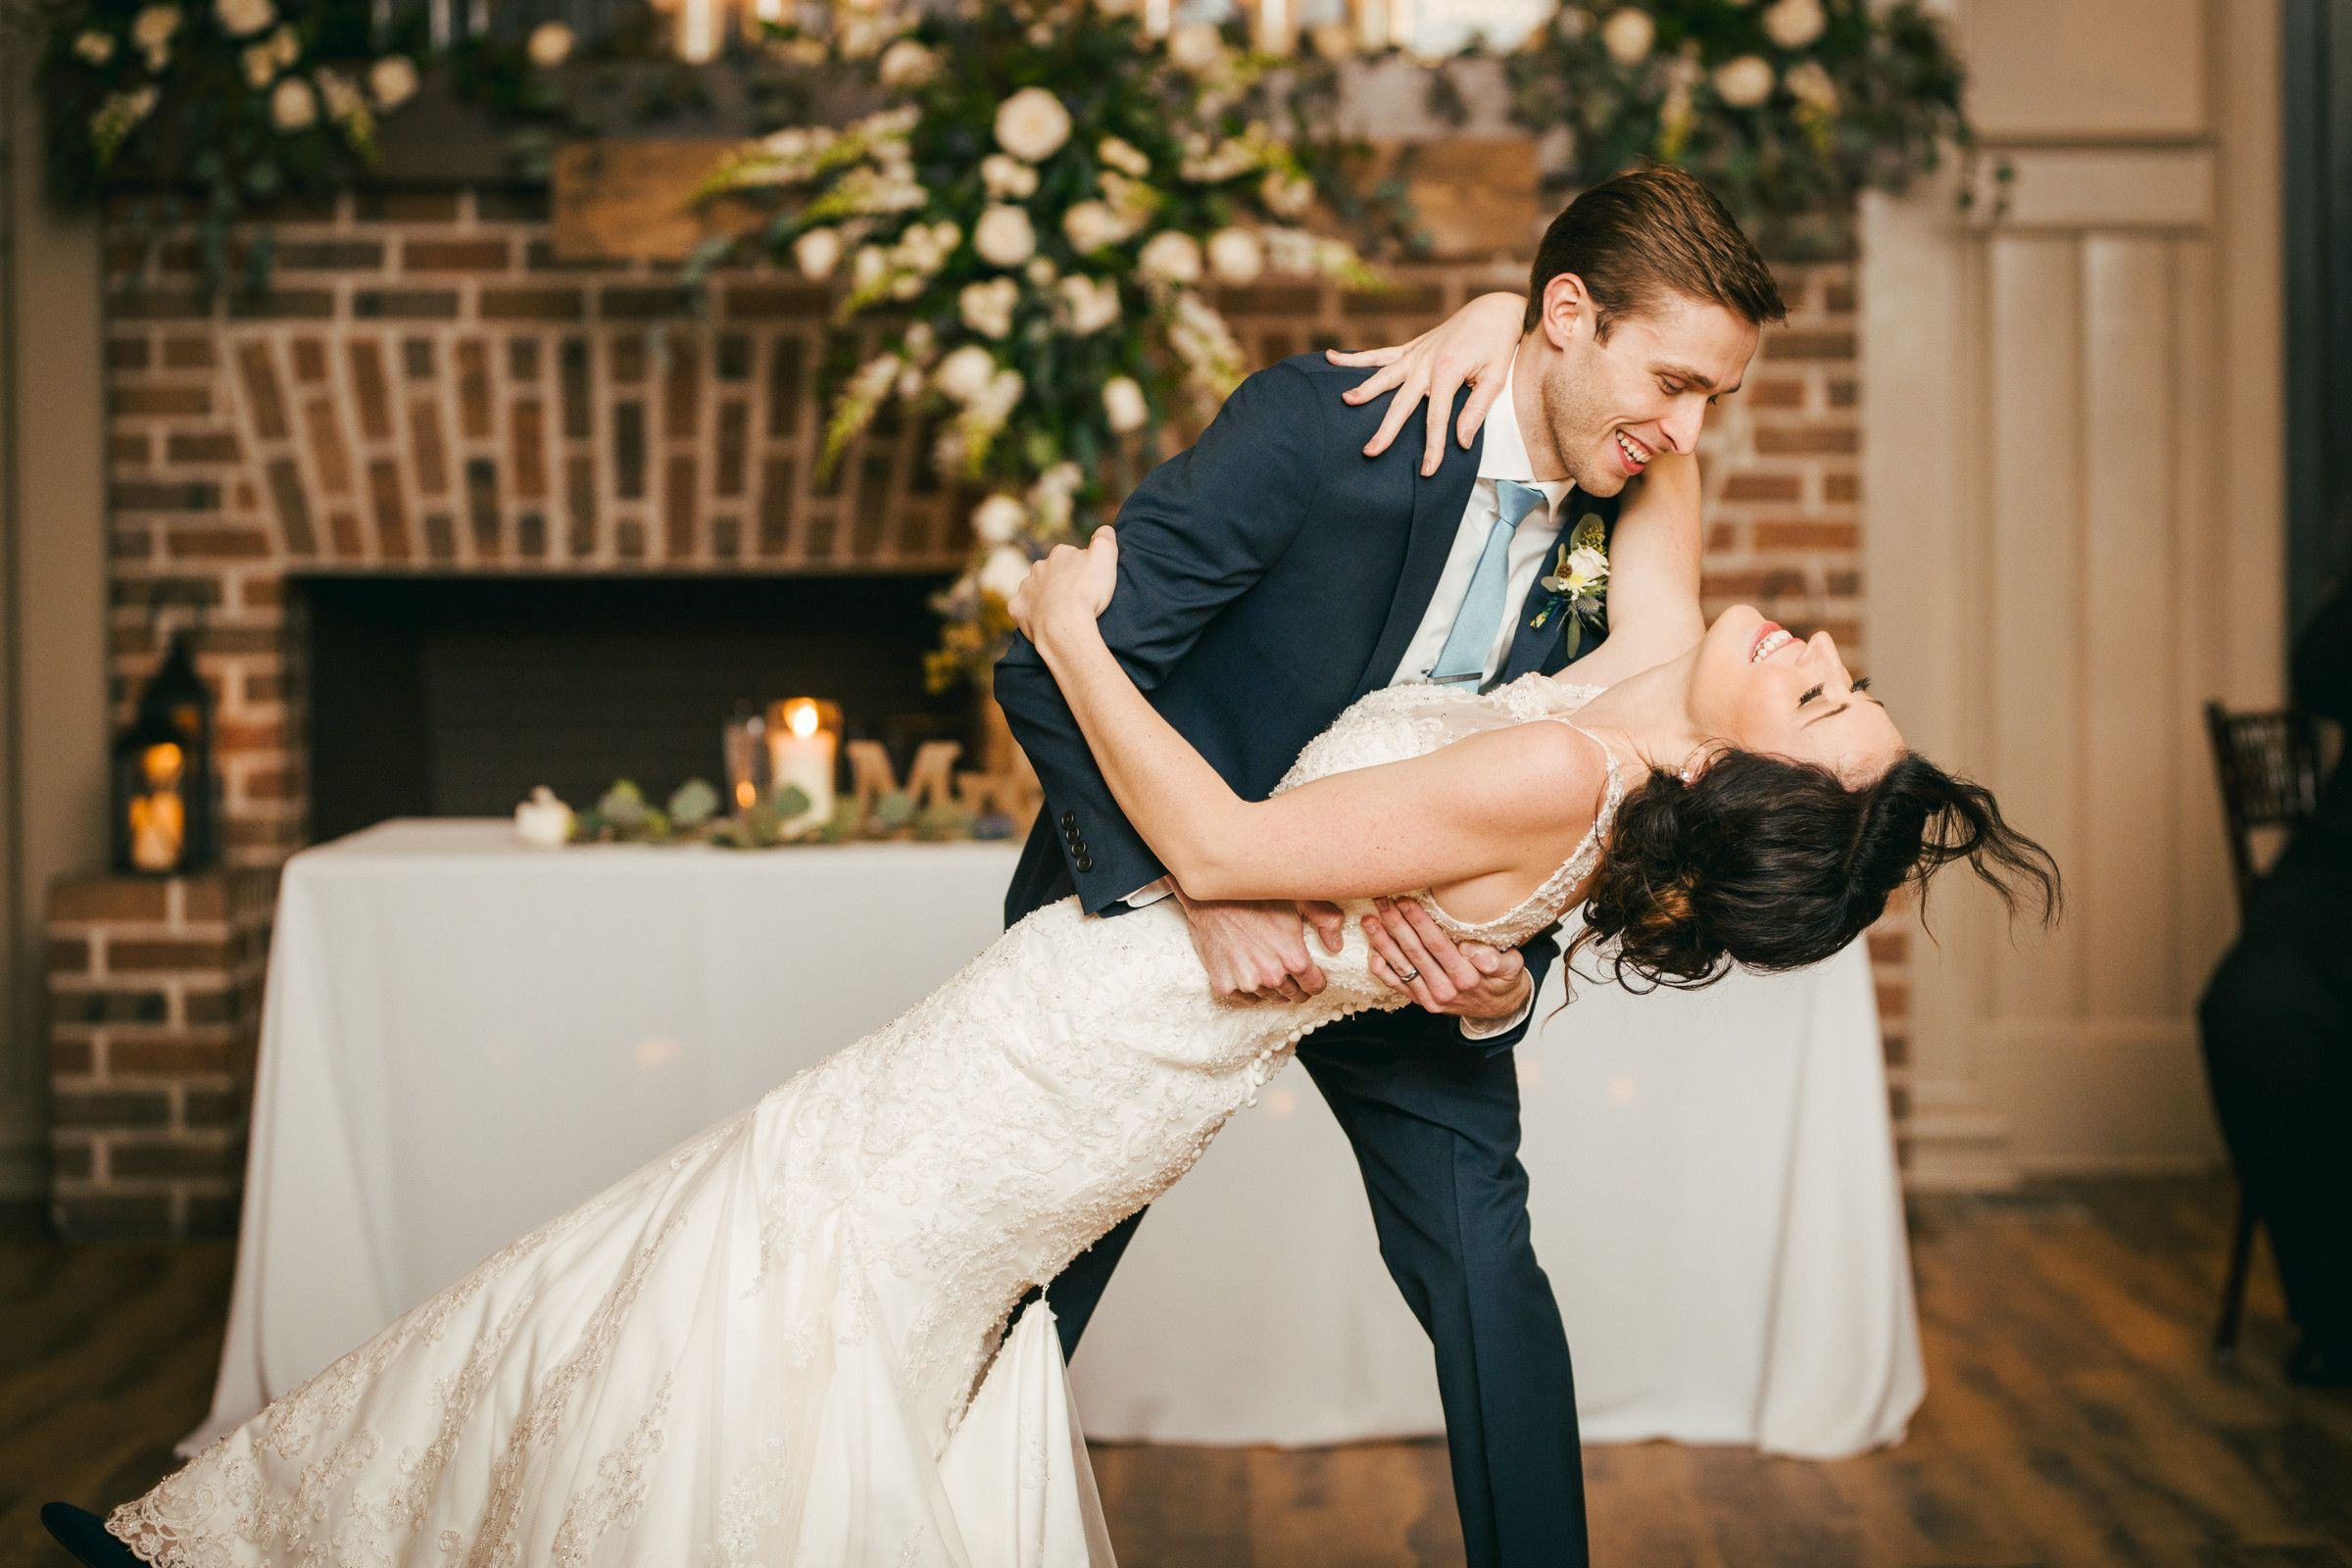 Bright And Vivid Wedding Photography By Charleston Sc Wedding Photographer And Bustld Vette Wedding Photography Inspiration Wedding Photographers Wedding Scene